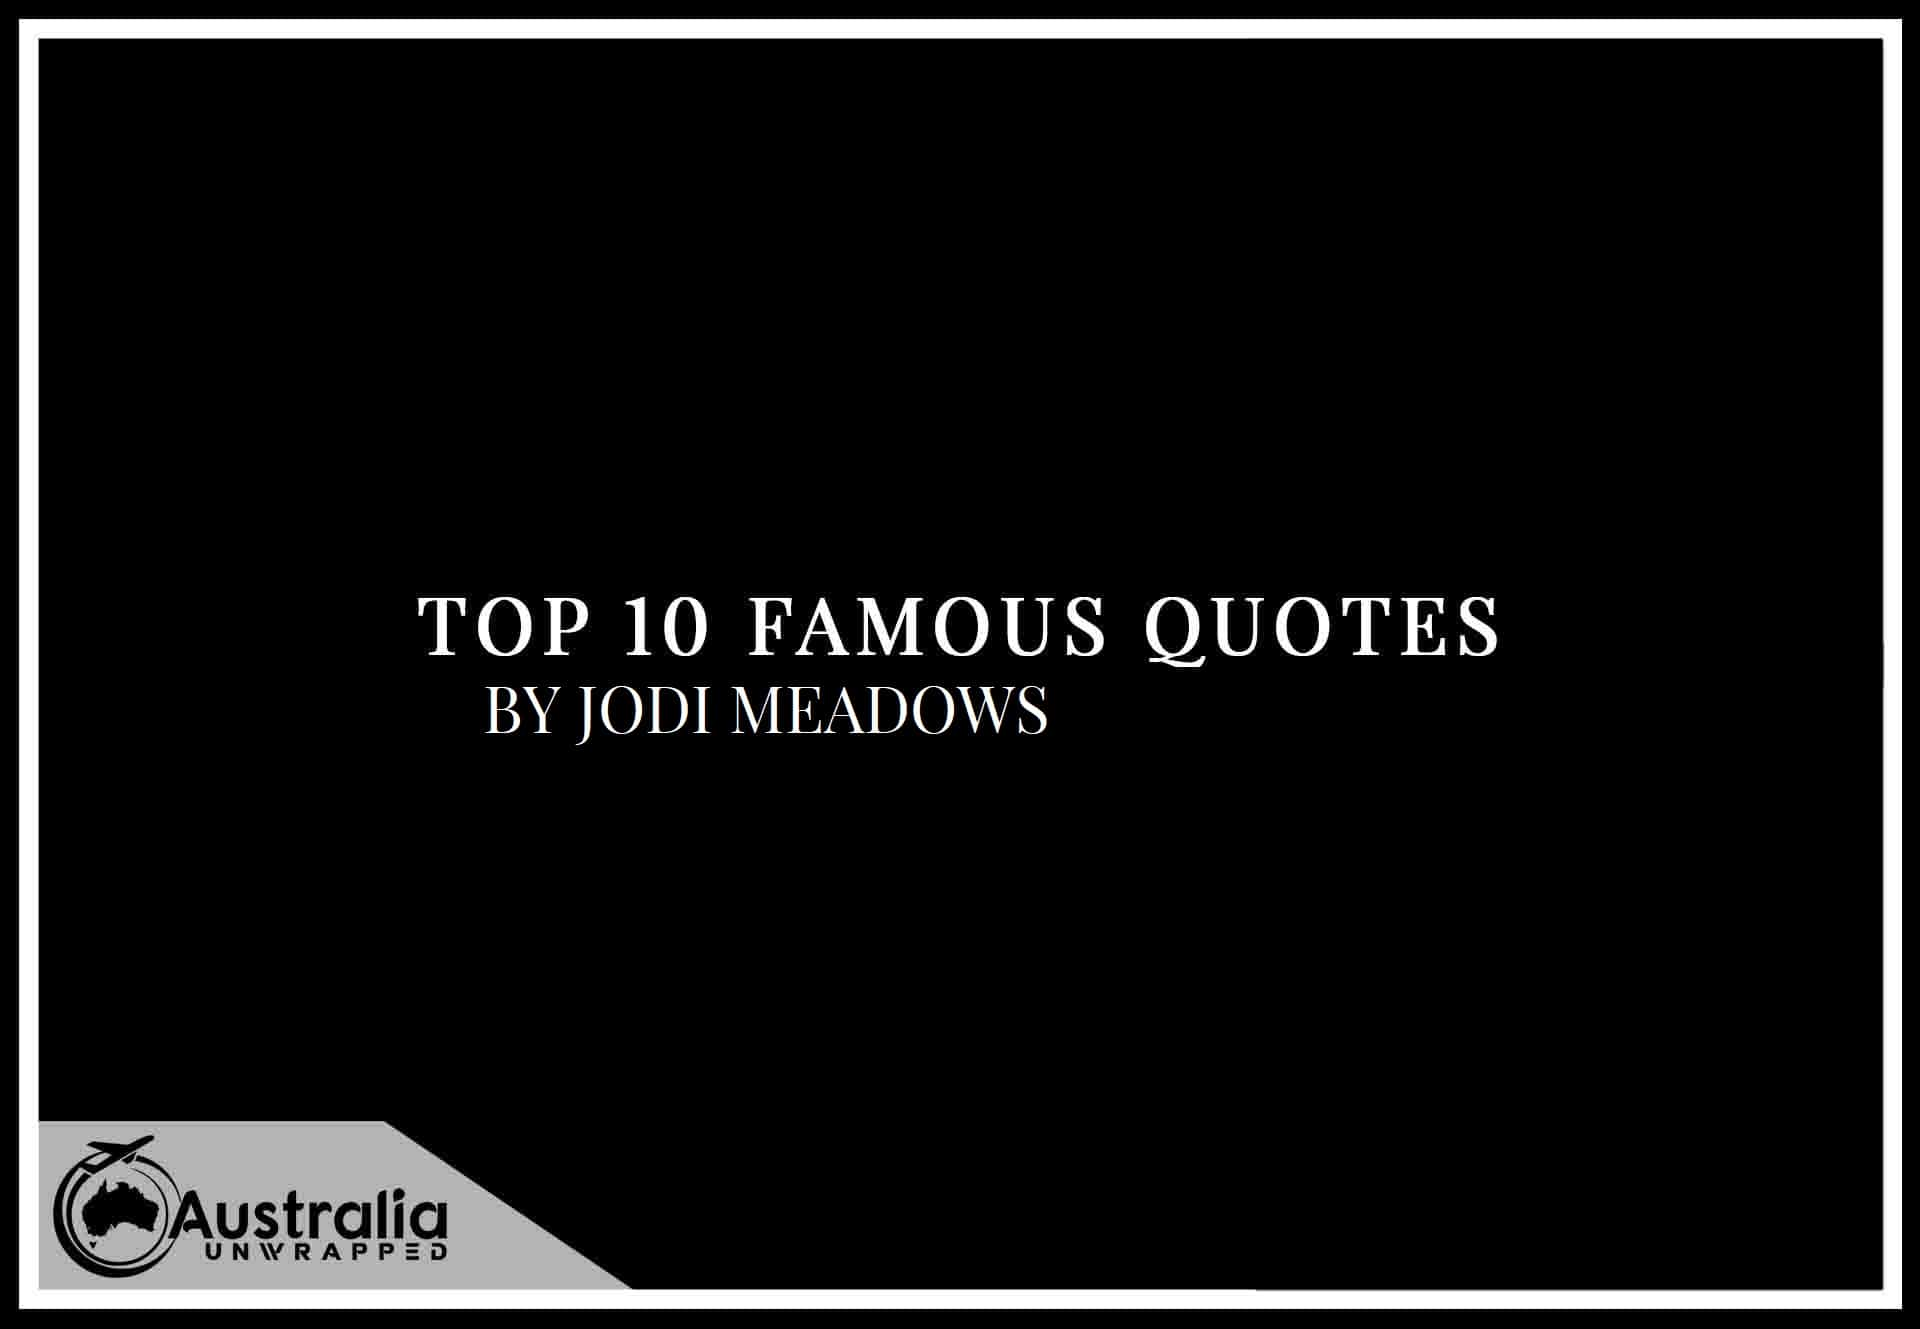 Top 10 Famous Quotes by Author Jodi Meadows